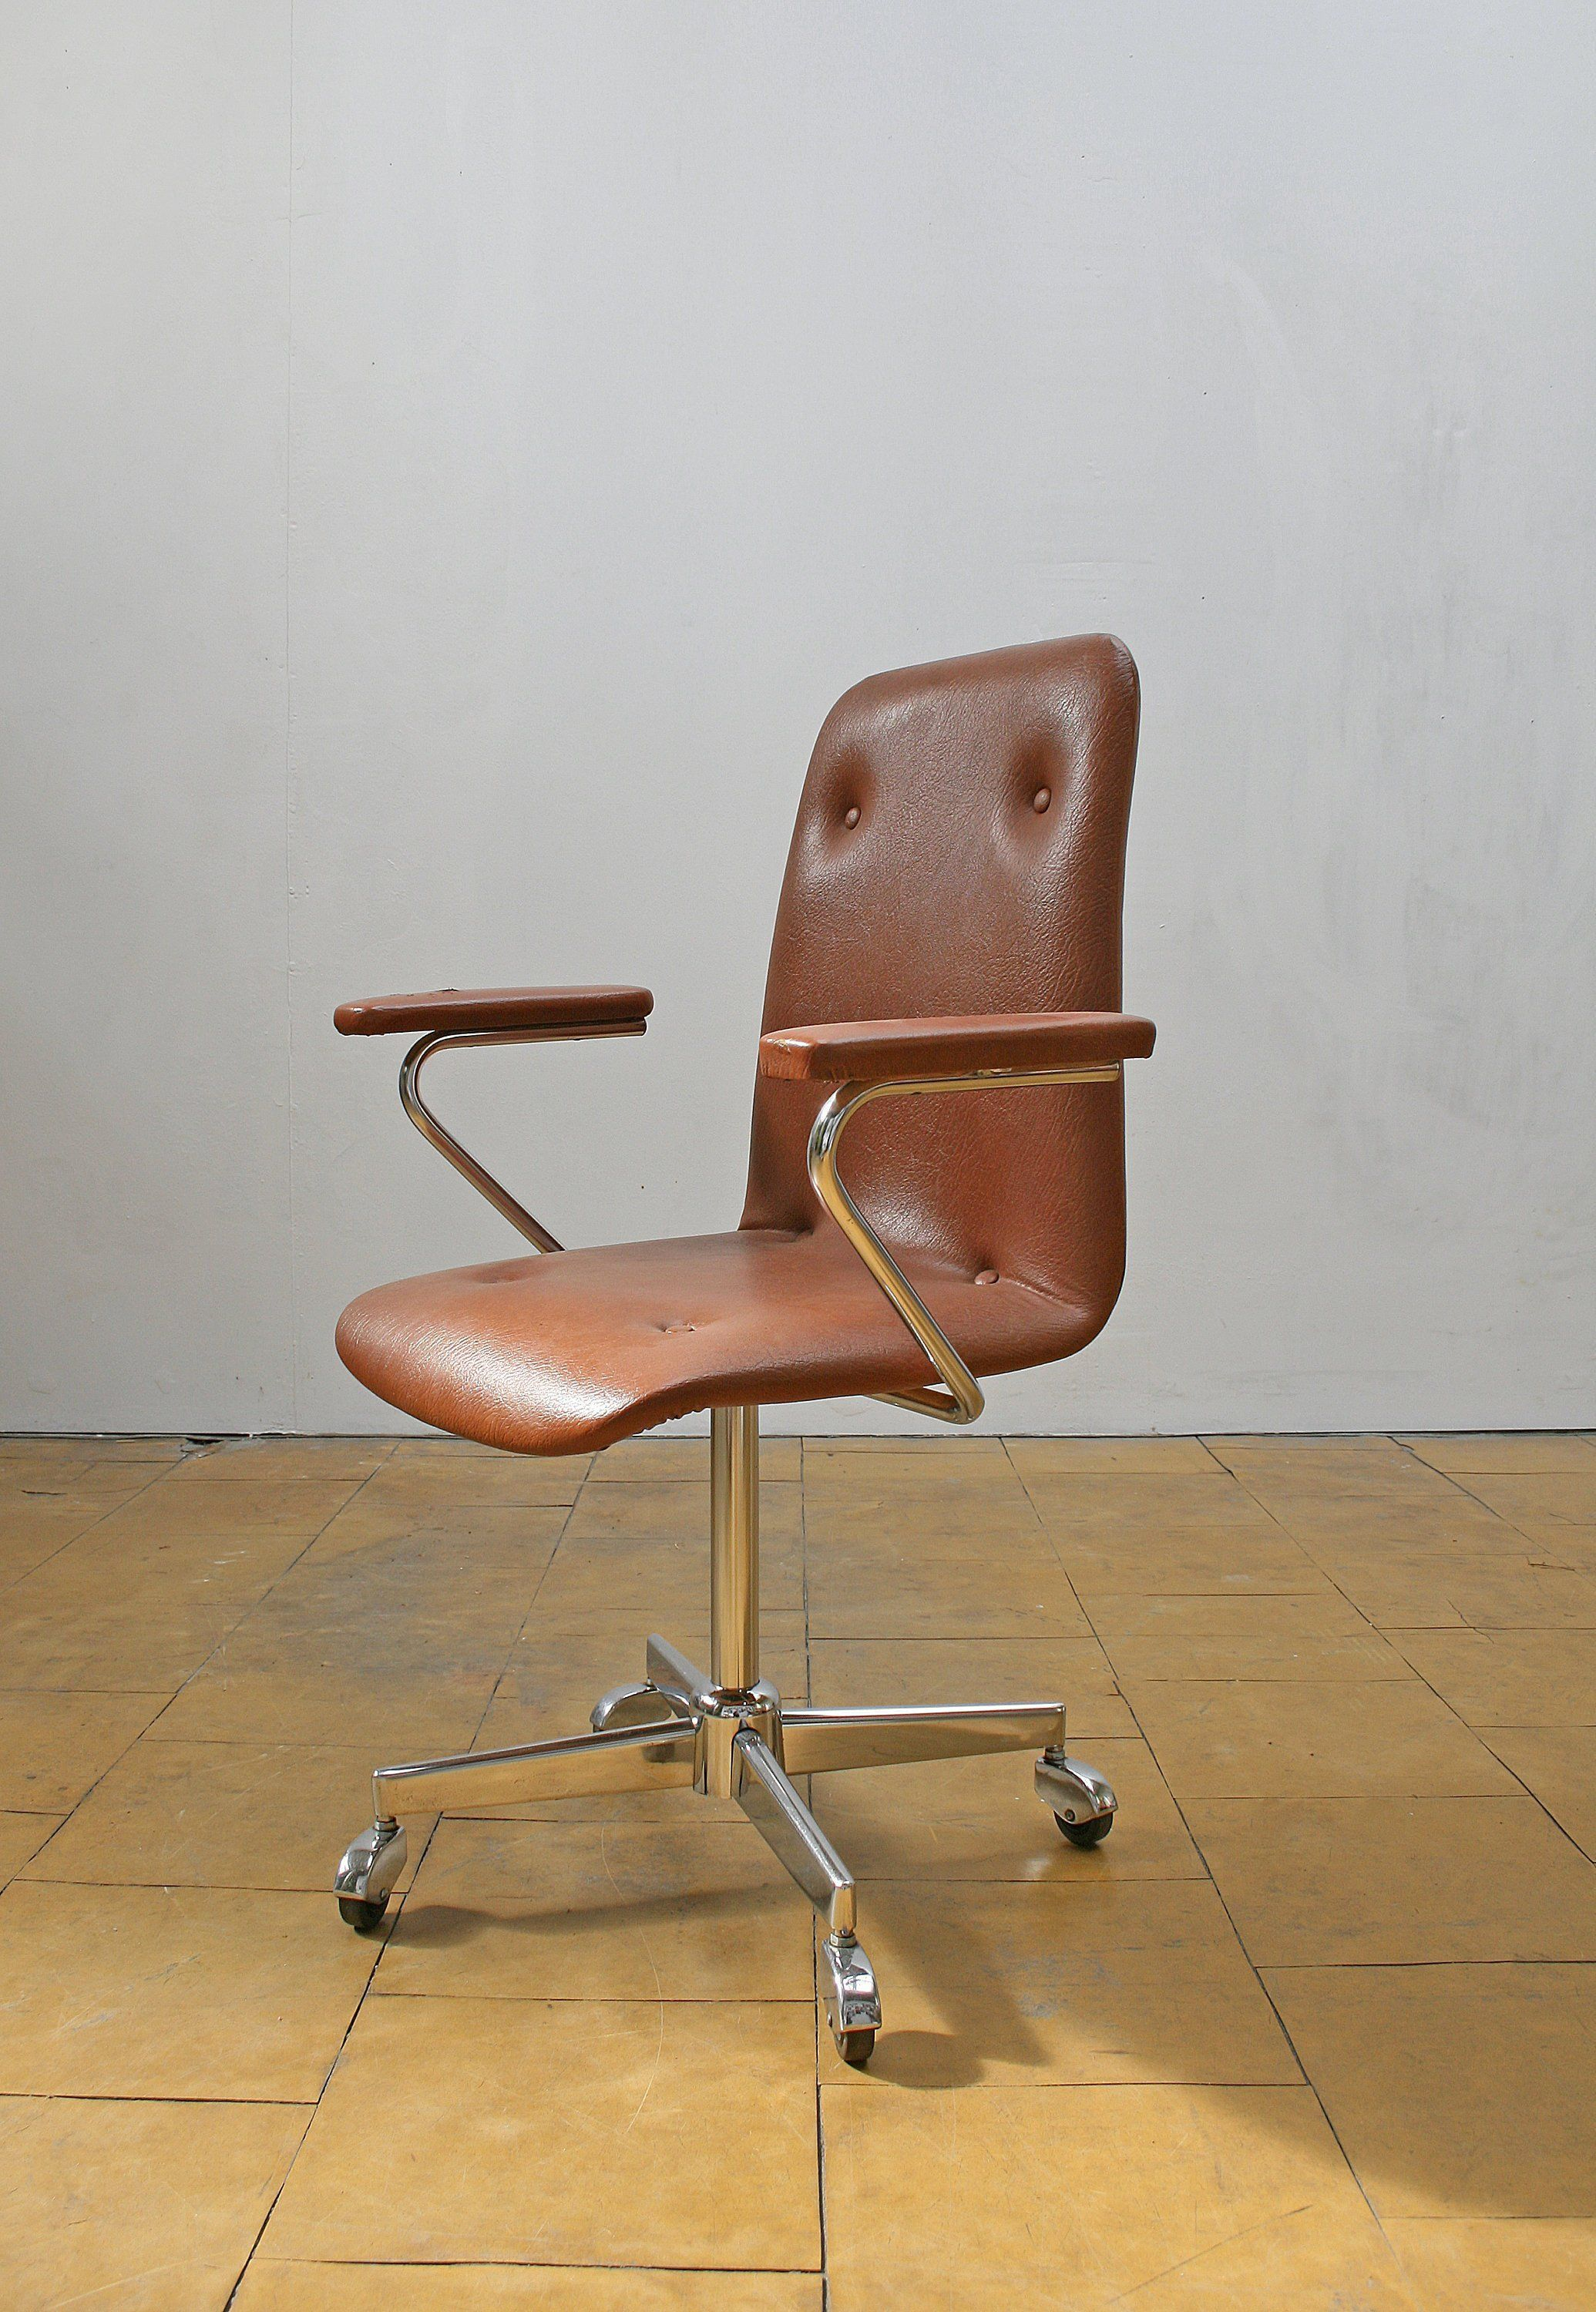 Vintage Rusty Brown Leather Swivel Desk Armchair Office Loft Workspace Industrial West German Mid Century Modern Execu Armchair Mid Century Modern Leather Seat